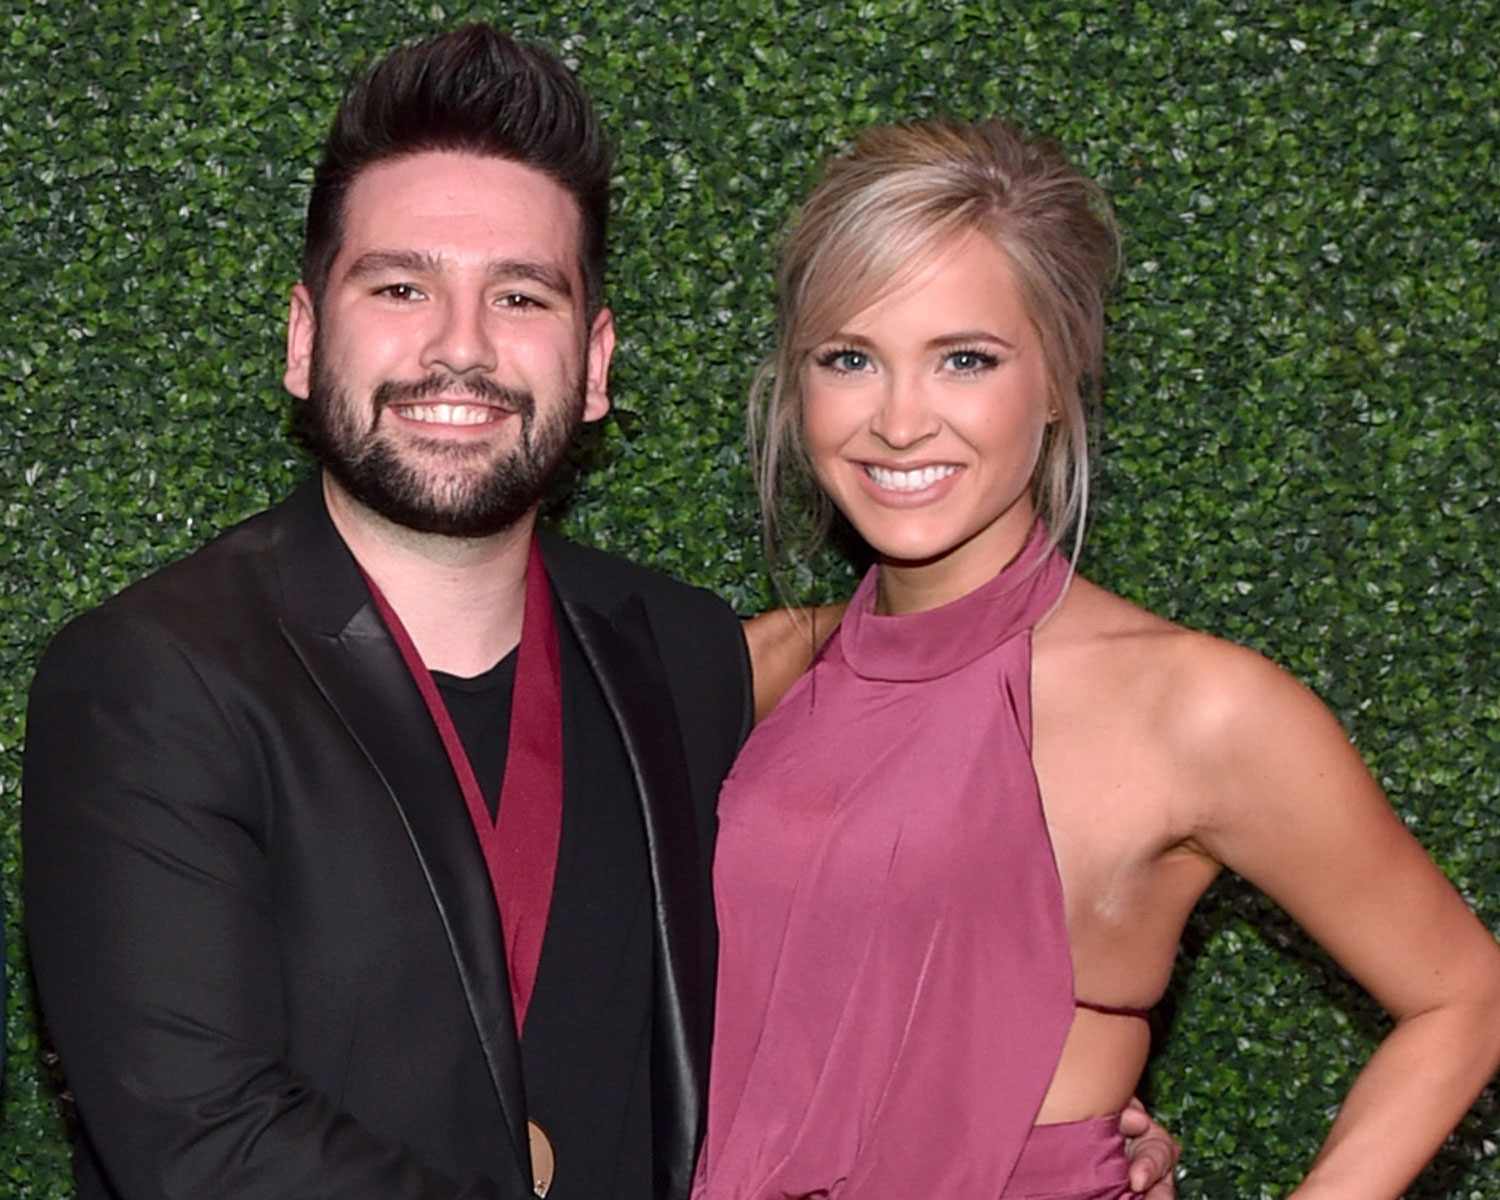 Shay mooney dan shay married